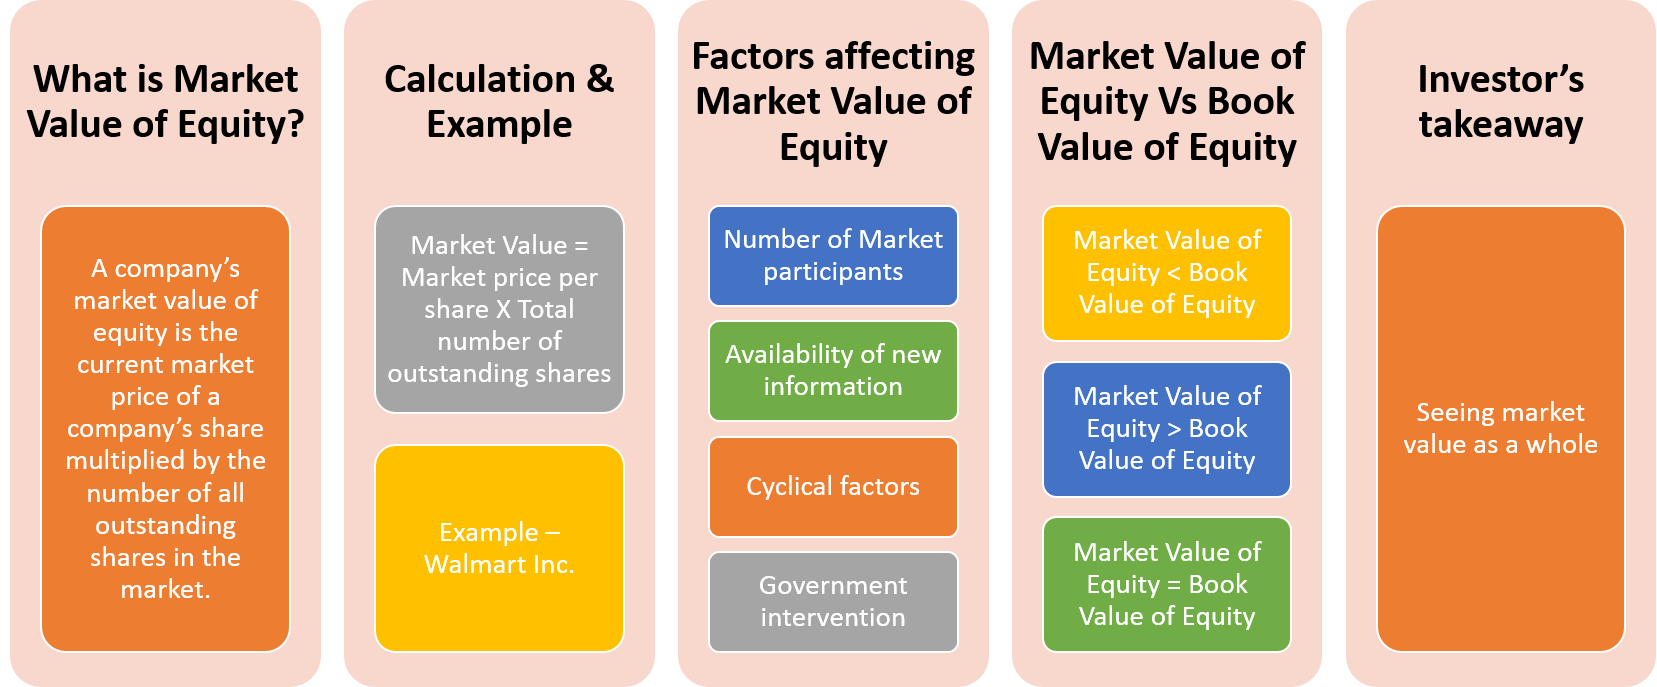 market value of equity calculate example factors vs book value efm. Black Bedroom Furniture Sets. Home Design Ideas